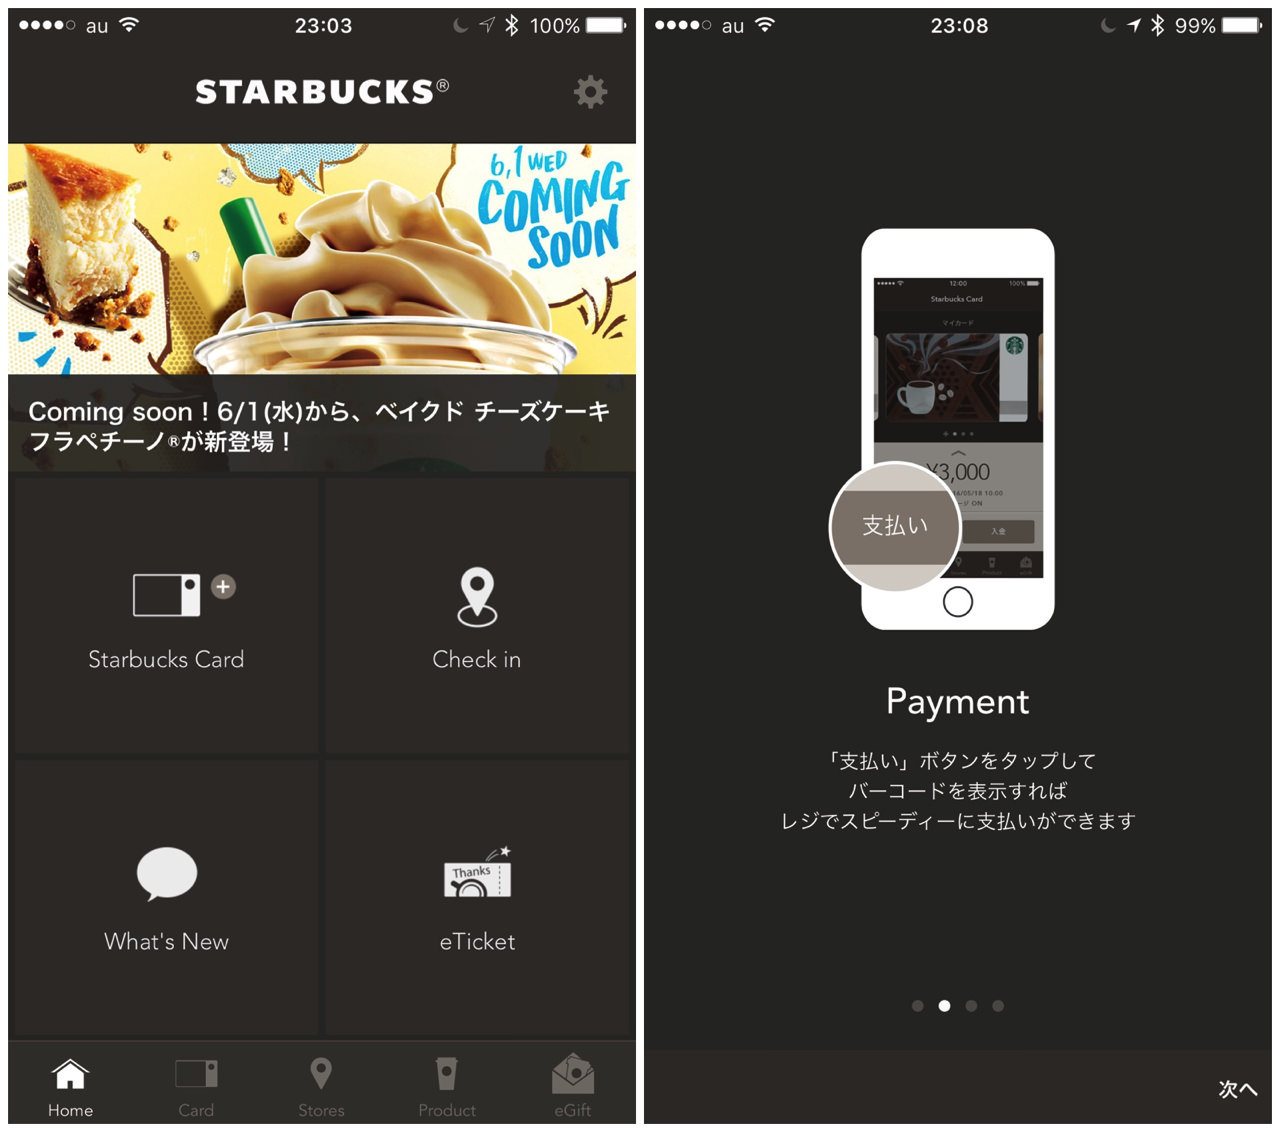 Starbucks japan official mobile app3